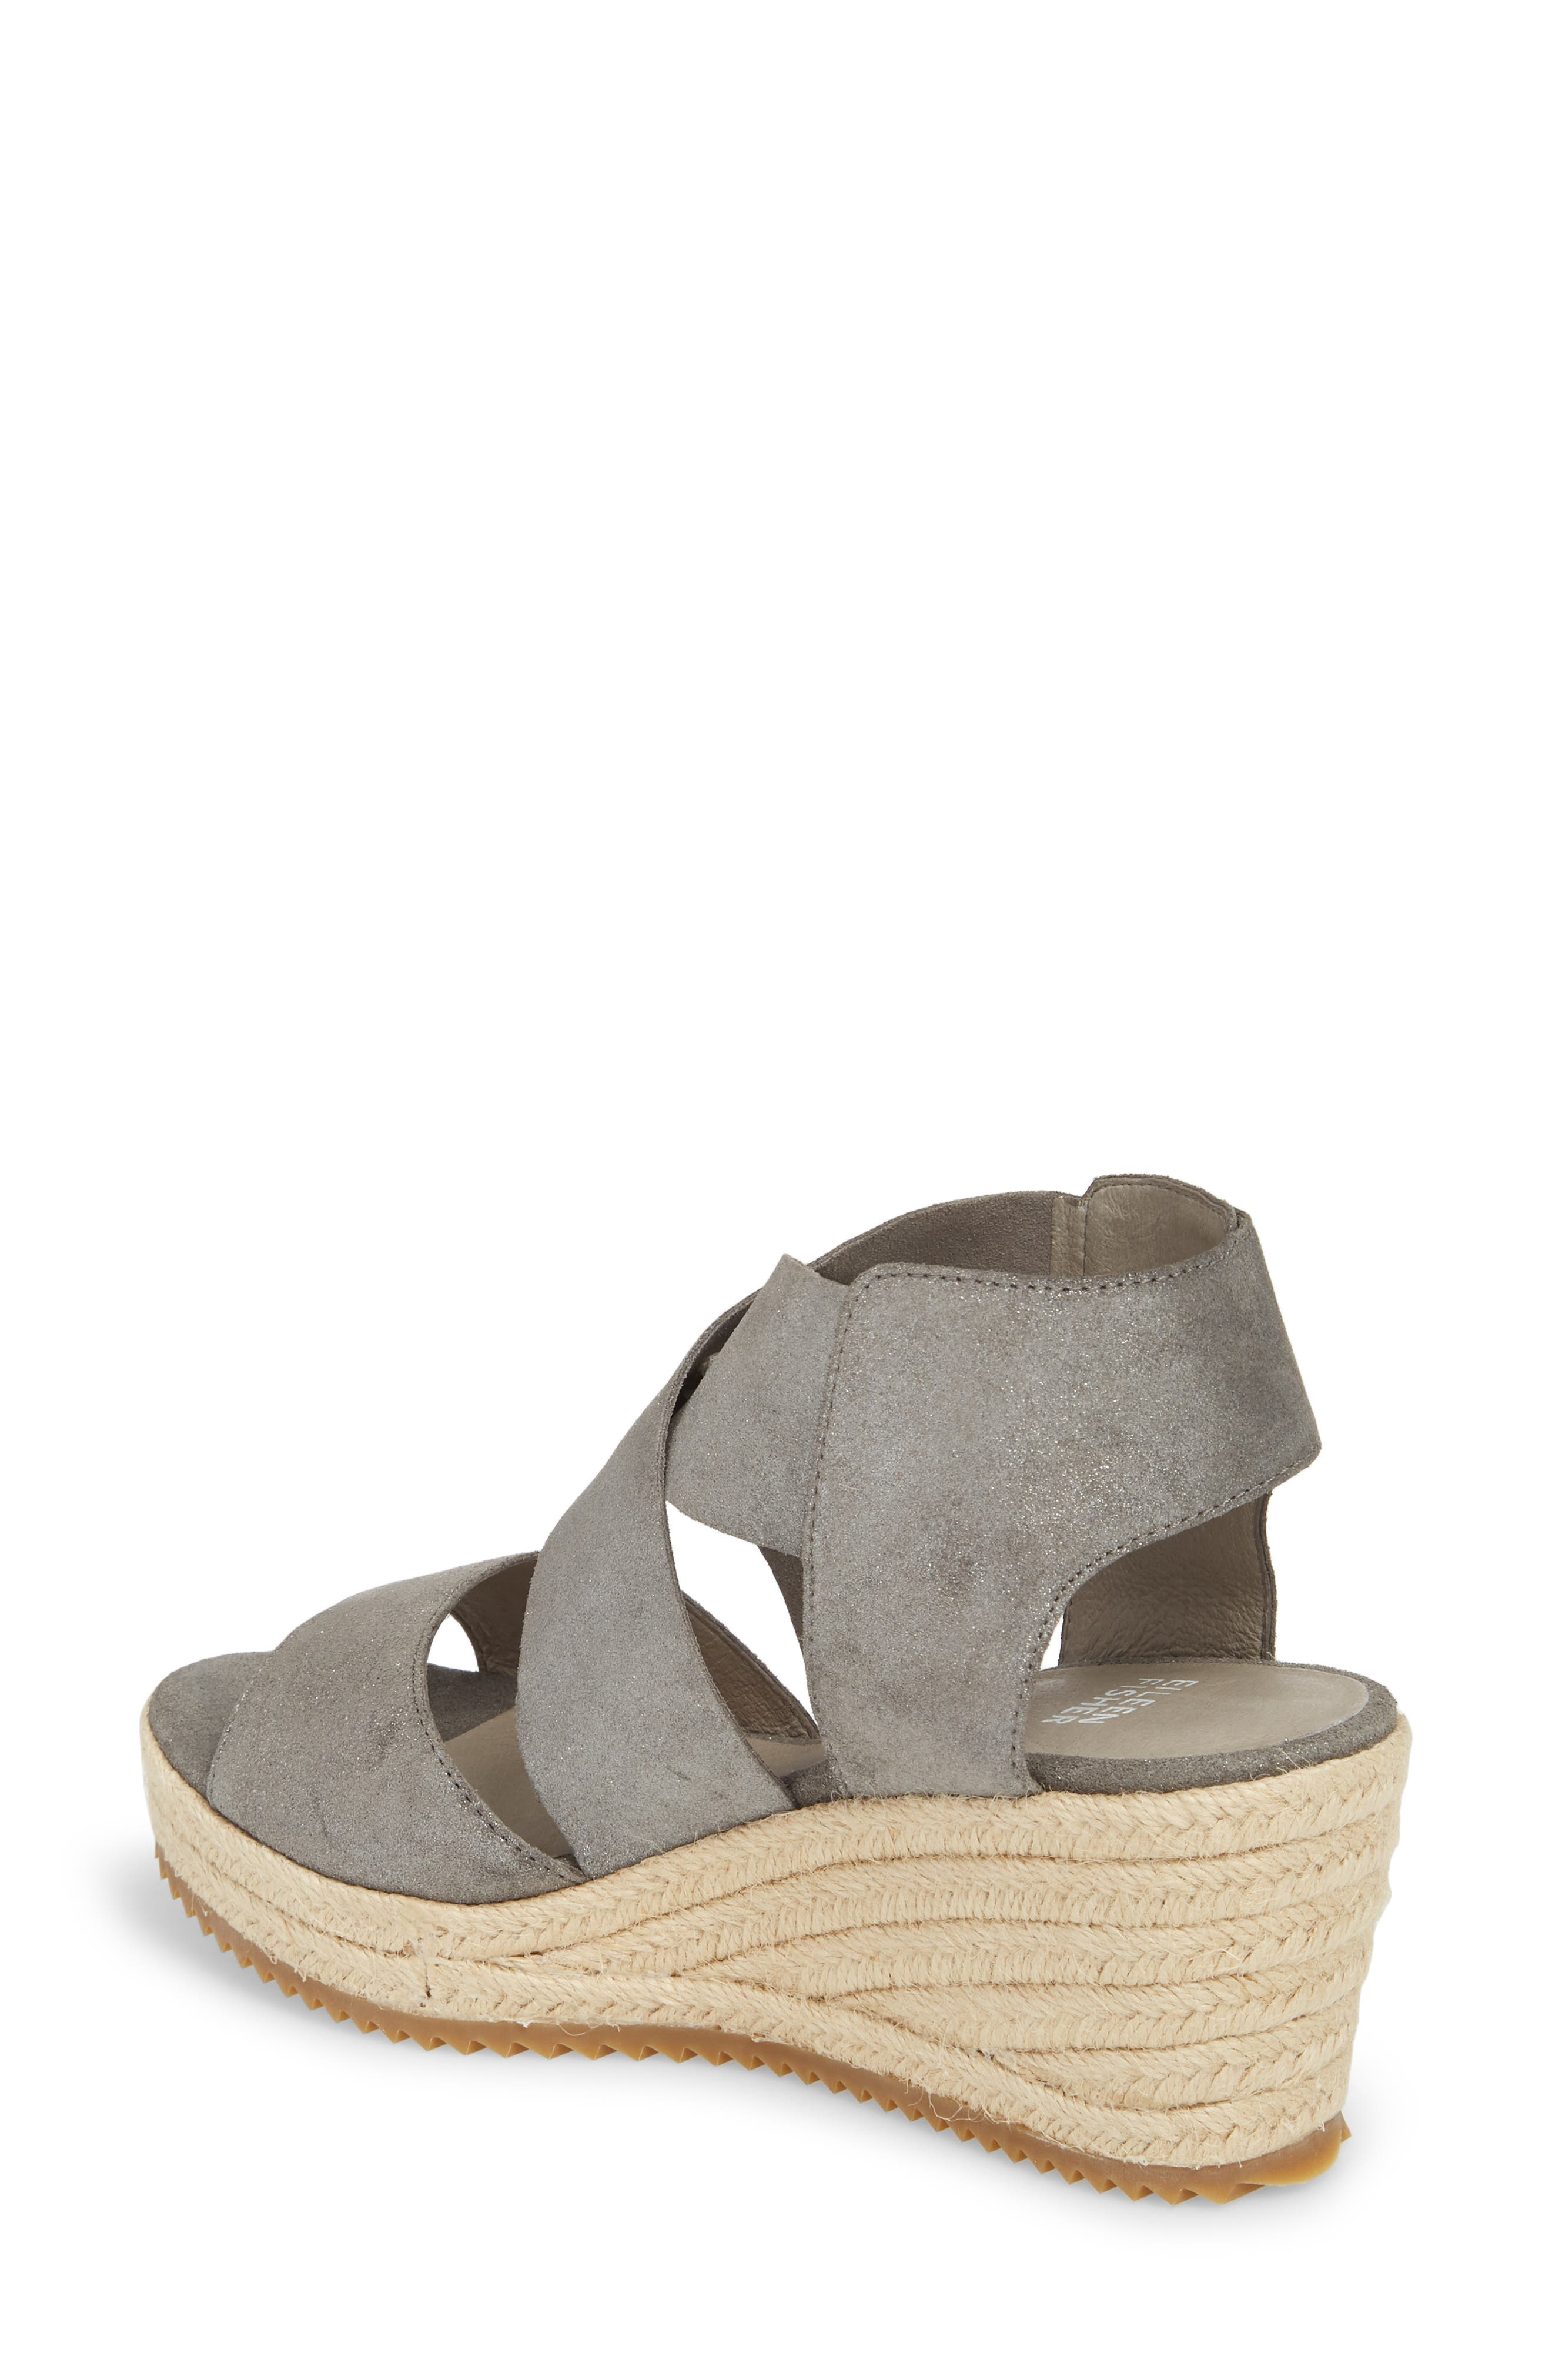 'Willow' Espadrille Wedge Sandal,                             Alternate thumbnail 2, color,                             Pewter Metallic Suede